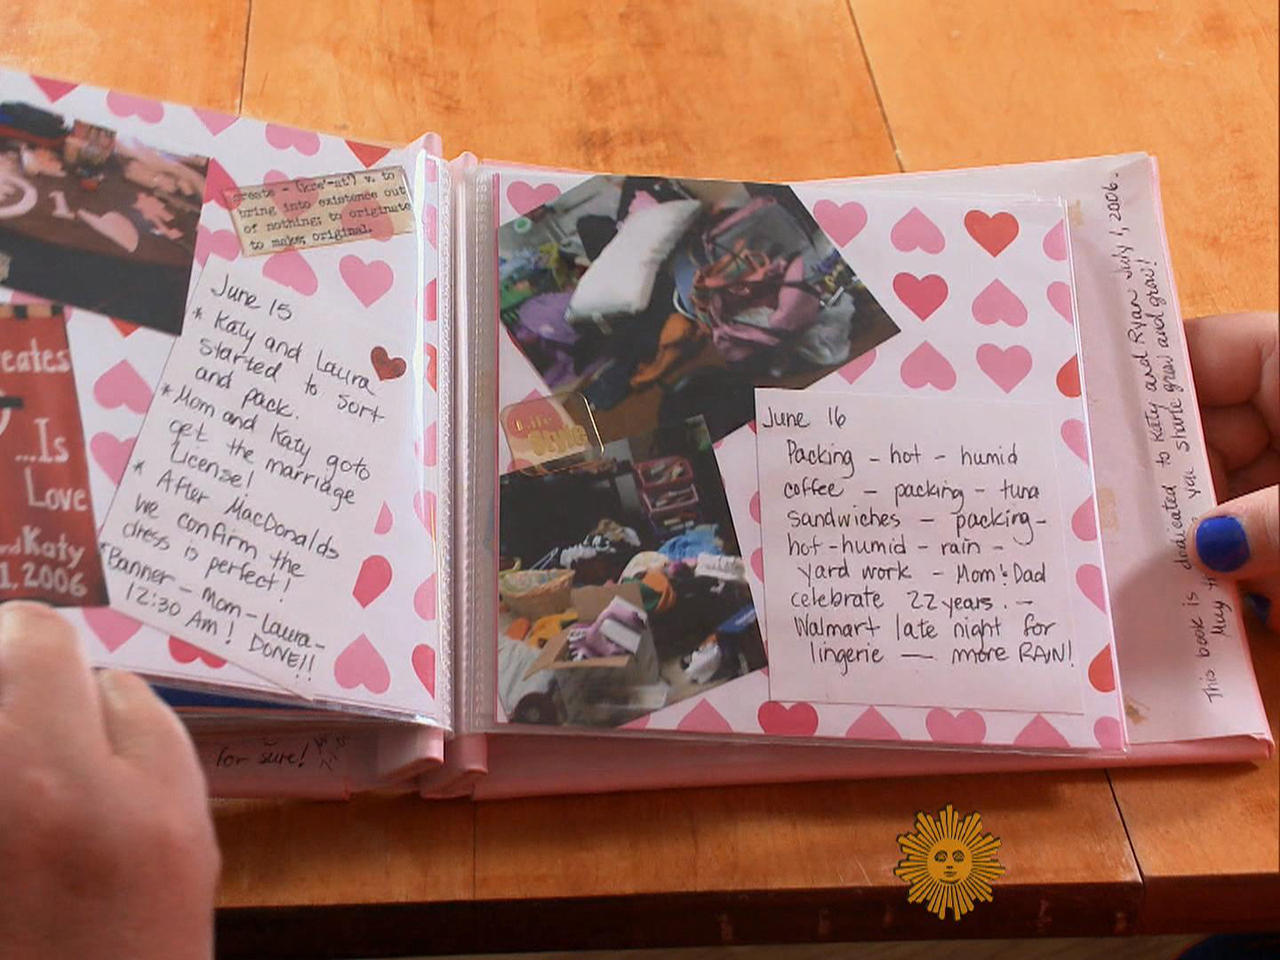 How to make scrapbook for husband - How To Make Scrapbook For Husband 88